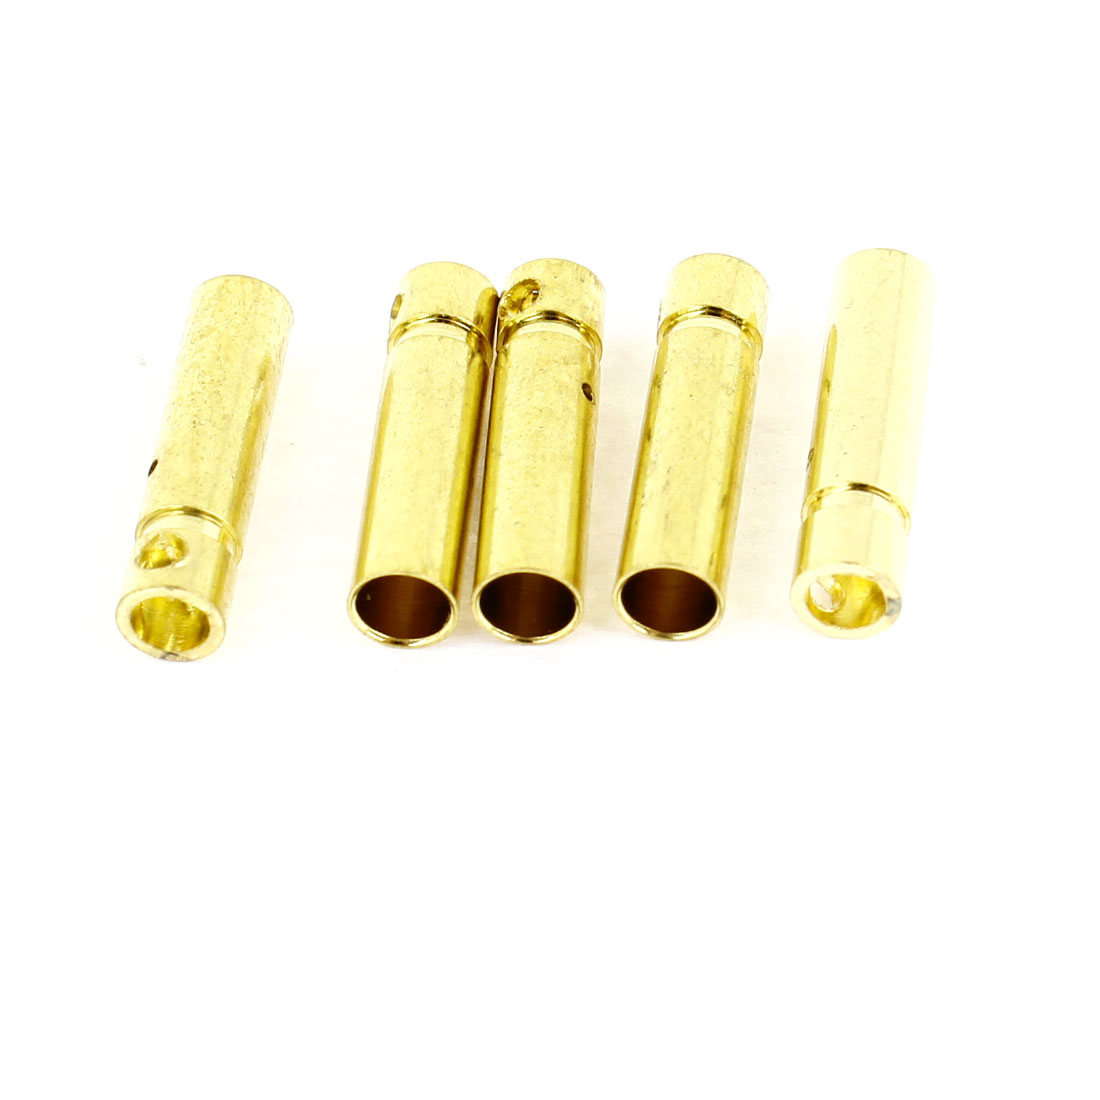 5 Pcs 3mm Inside Dia Female Banana Connector Replacement